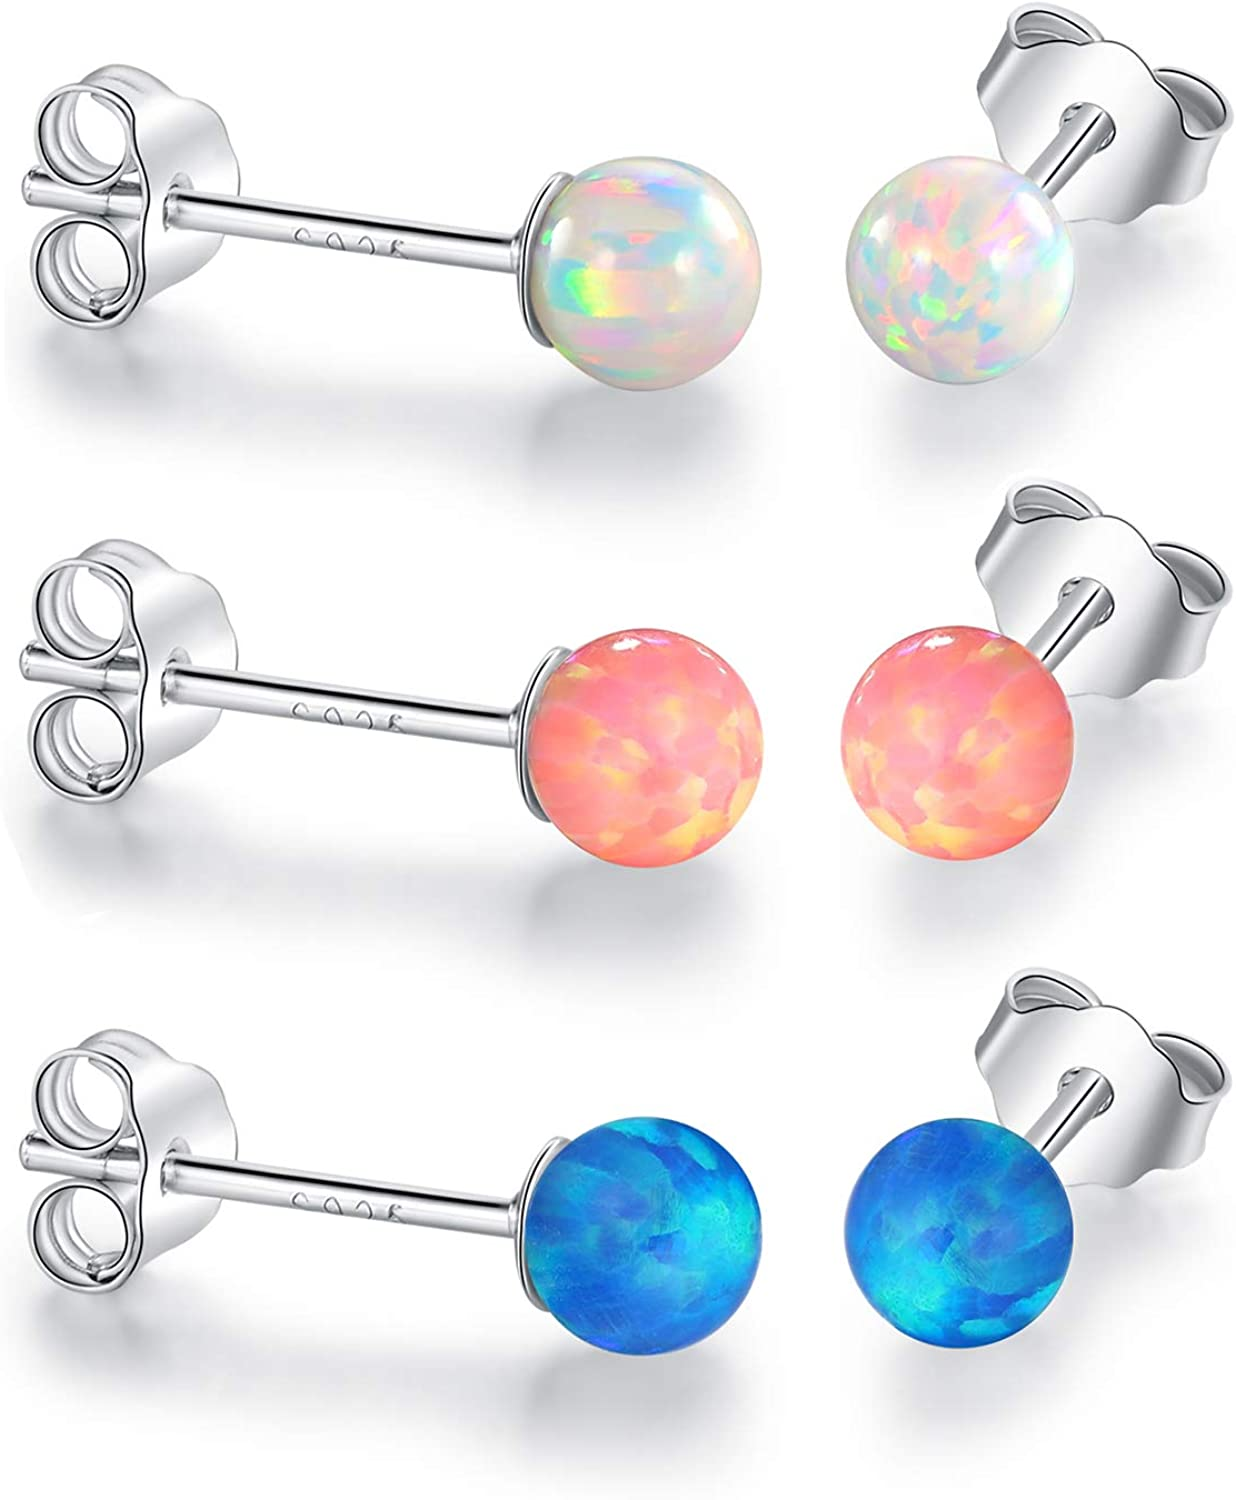 925 Sterling Silver Hypoallergenic Opal Stud Earrings for Sensitive Ear Girls Women Birthday Gifts for Teenager Daughter